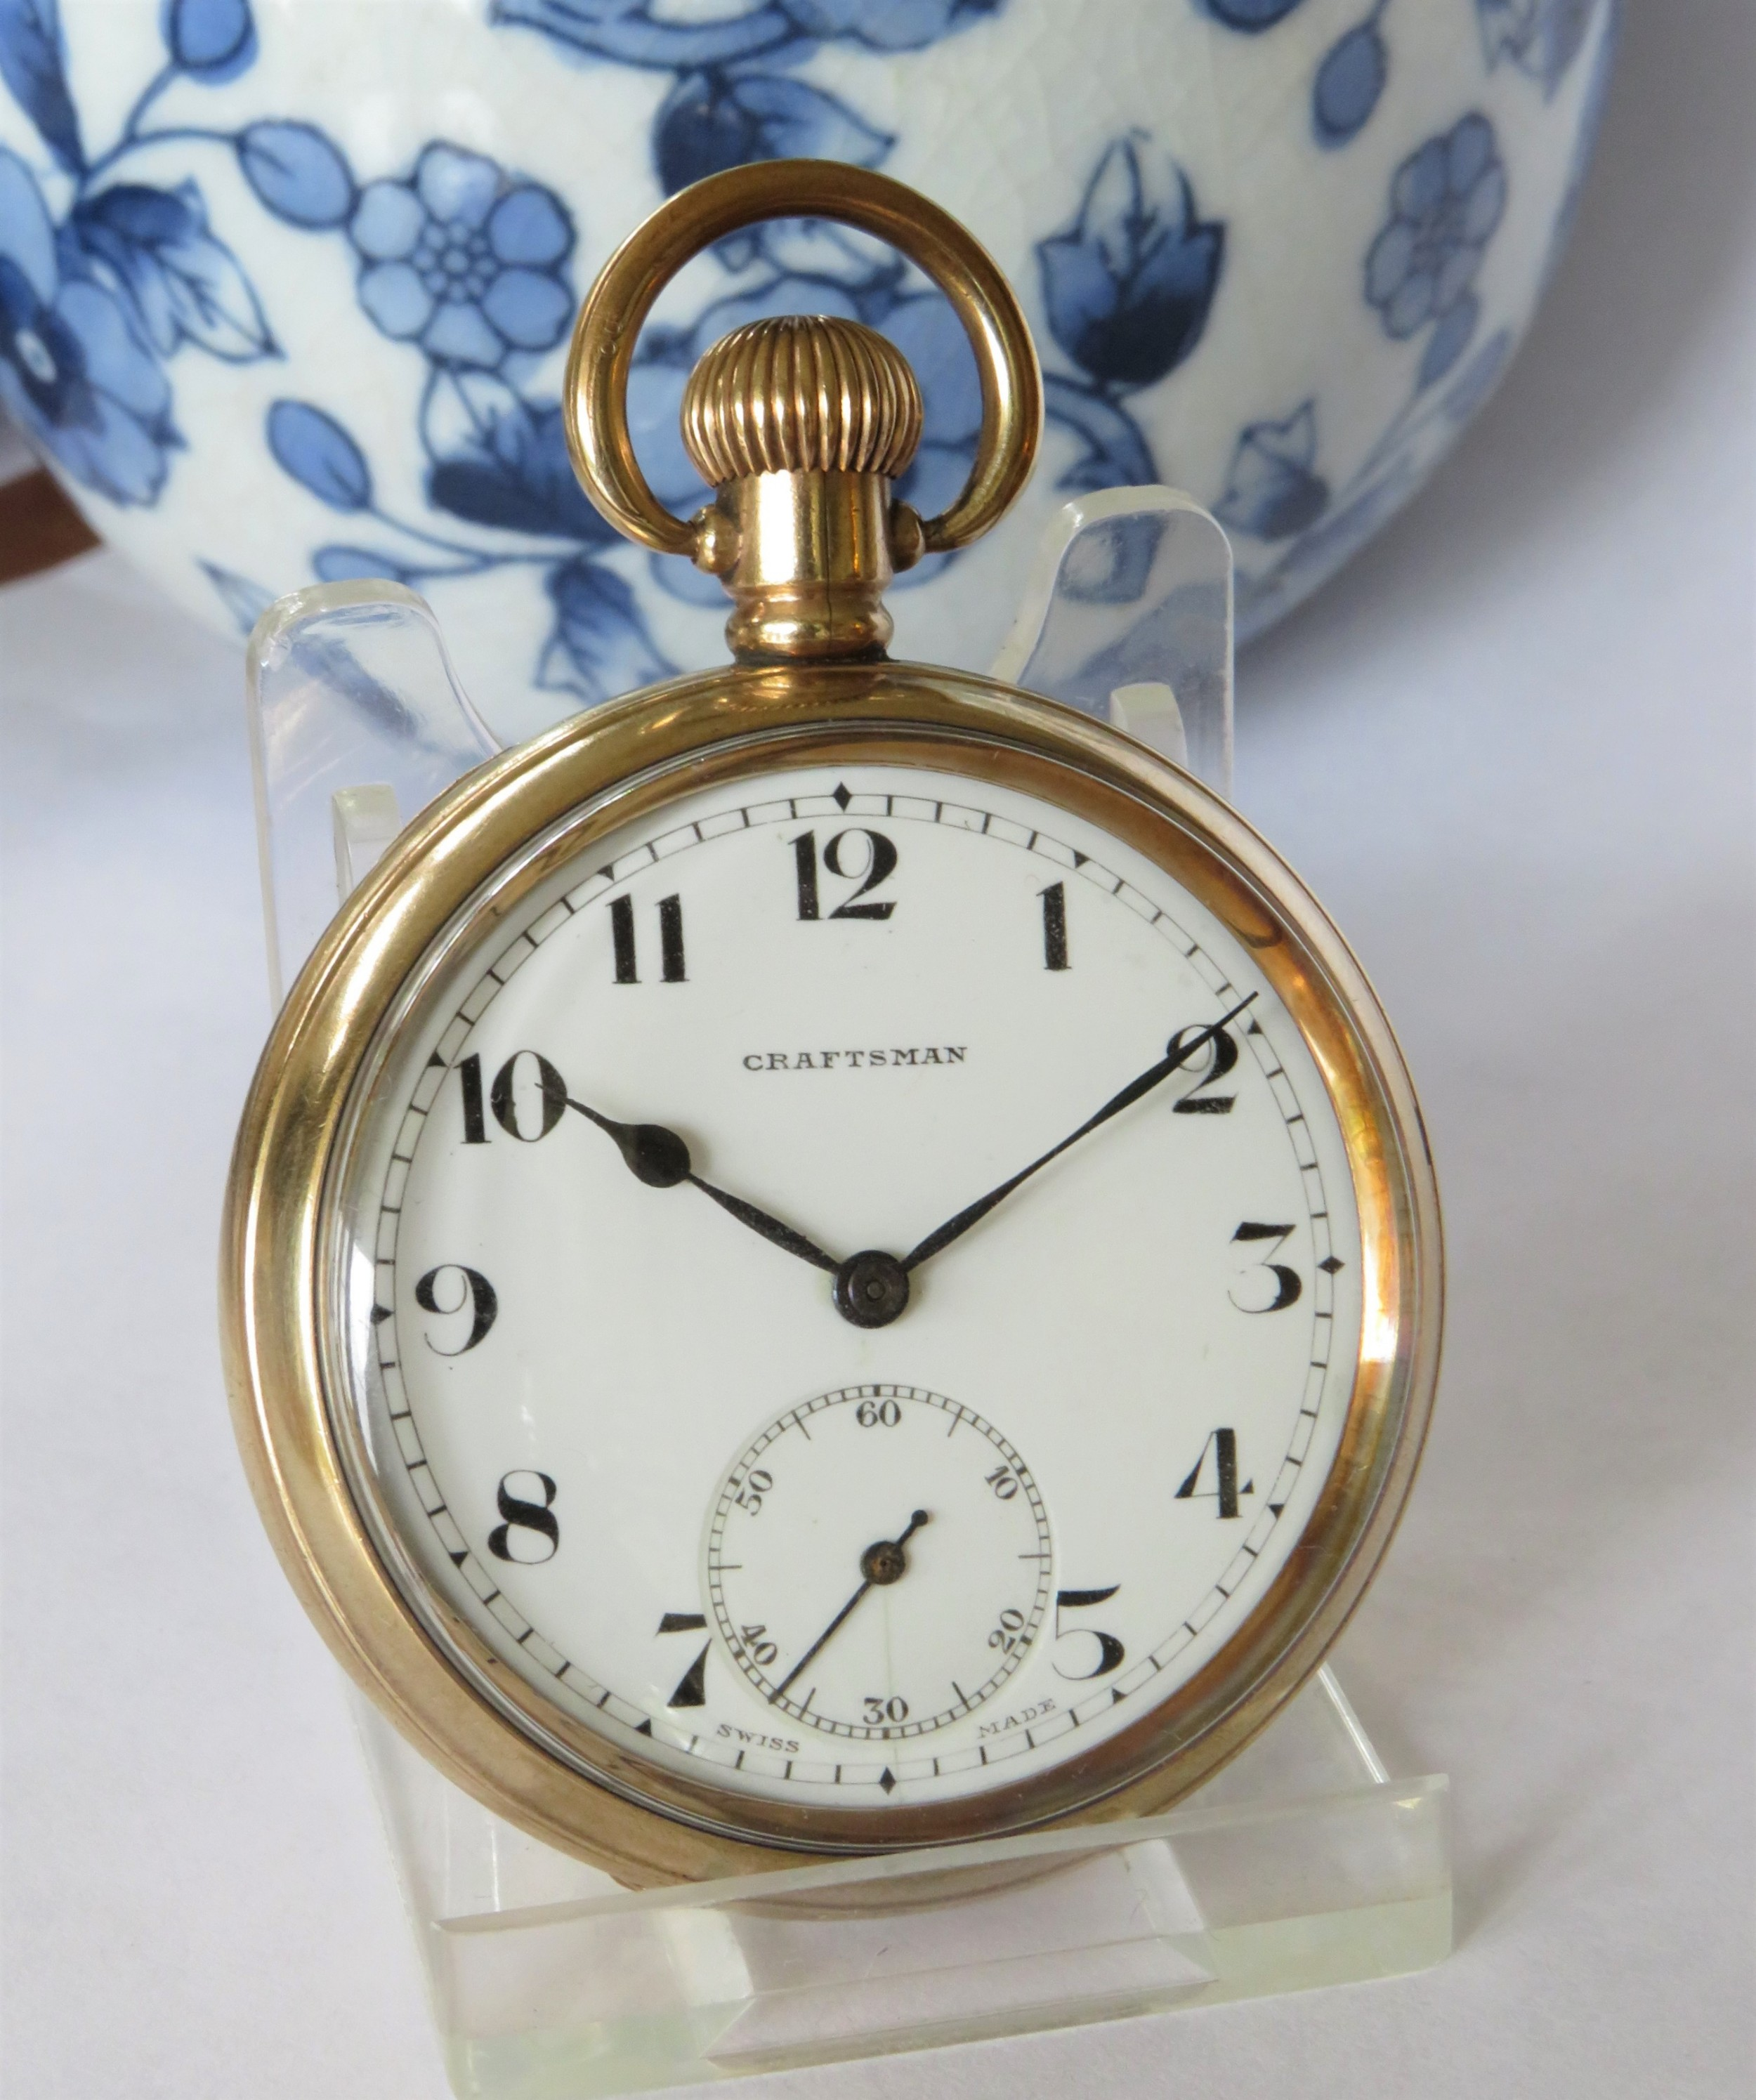 1930s craftsman gold plated pocket watch